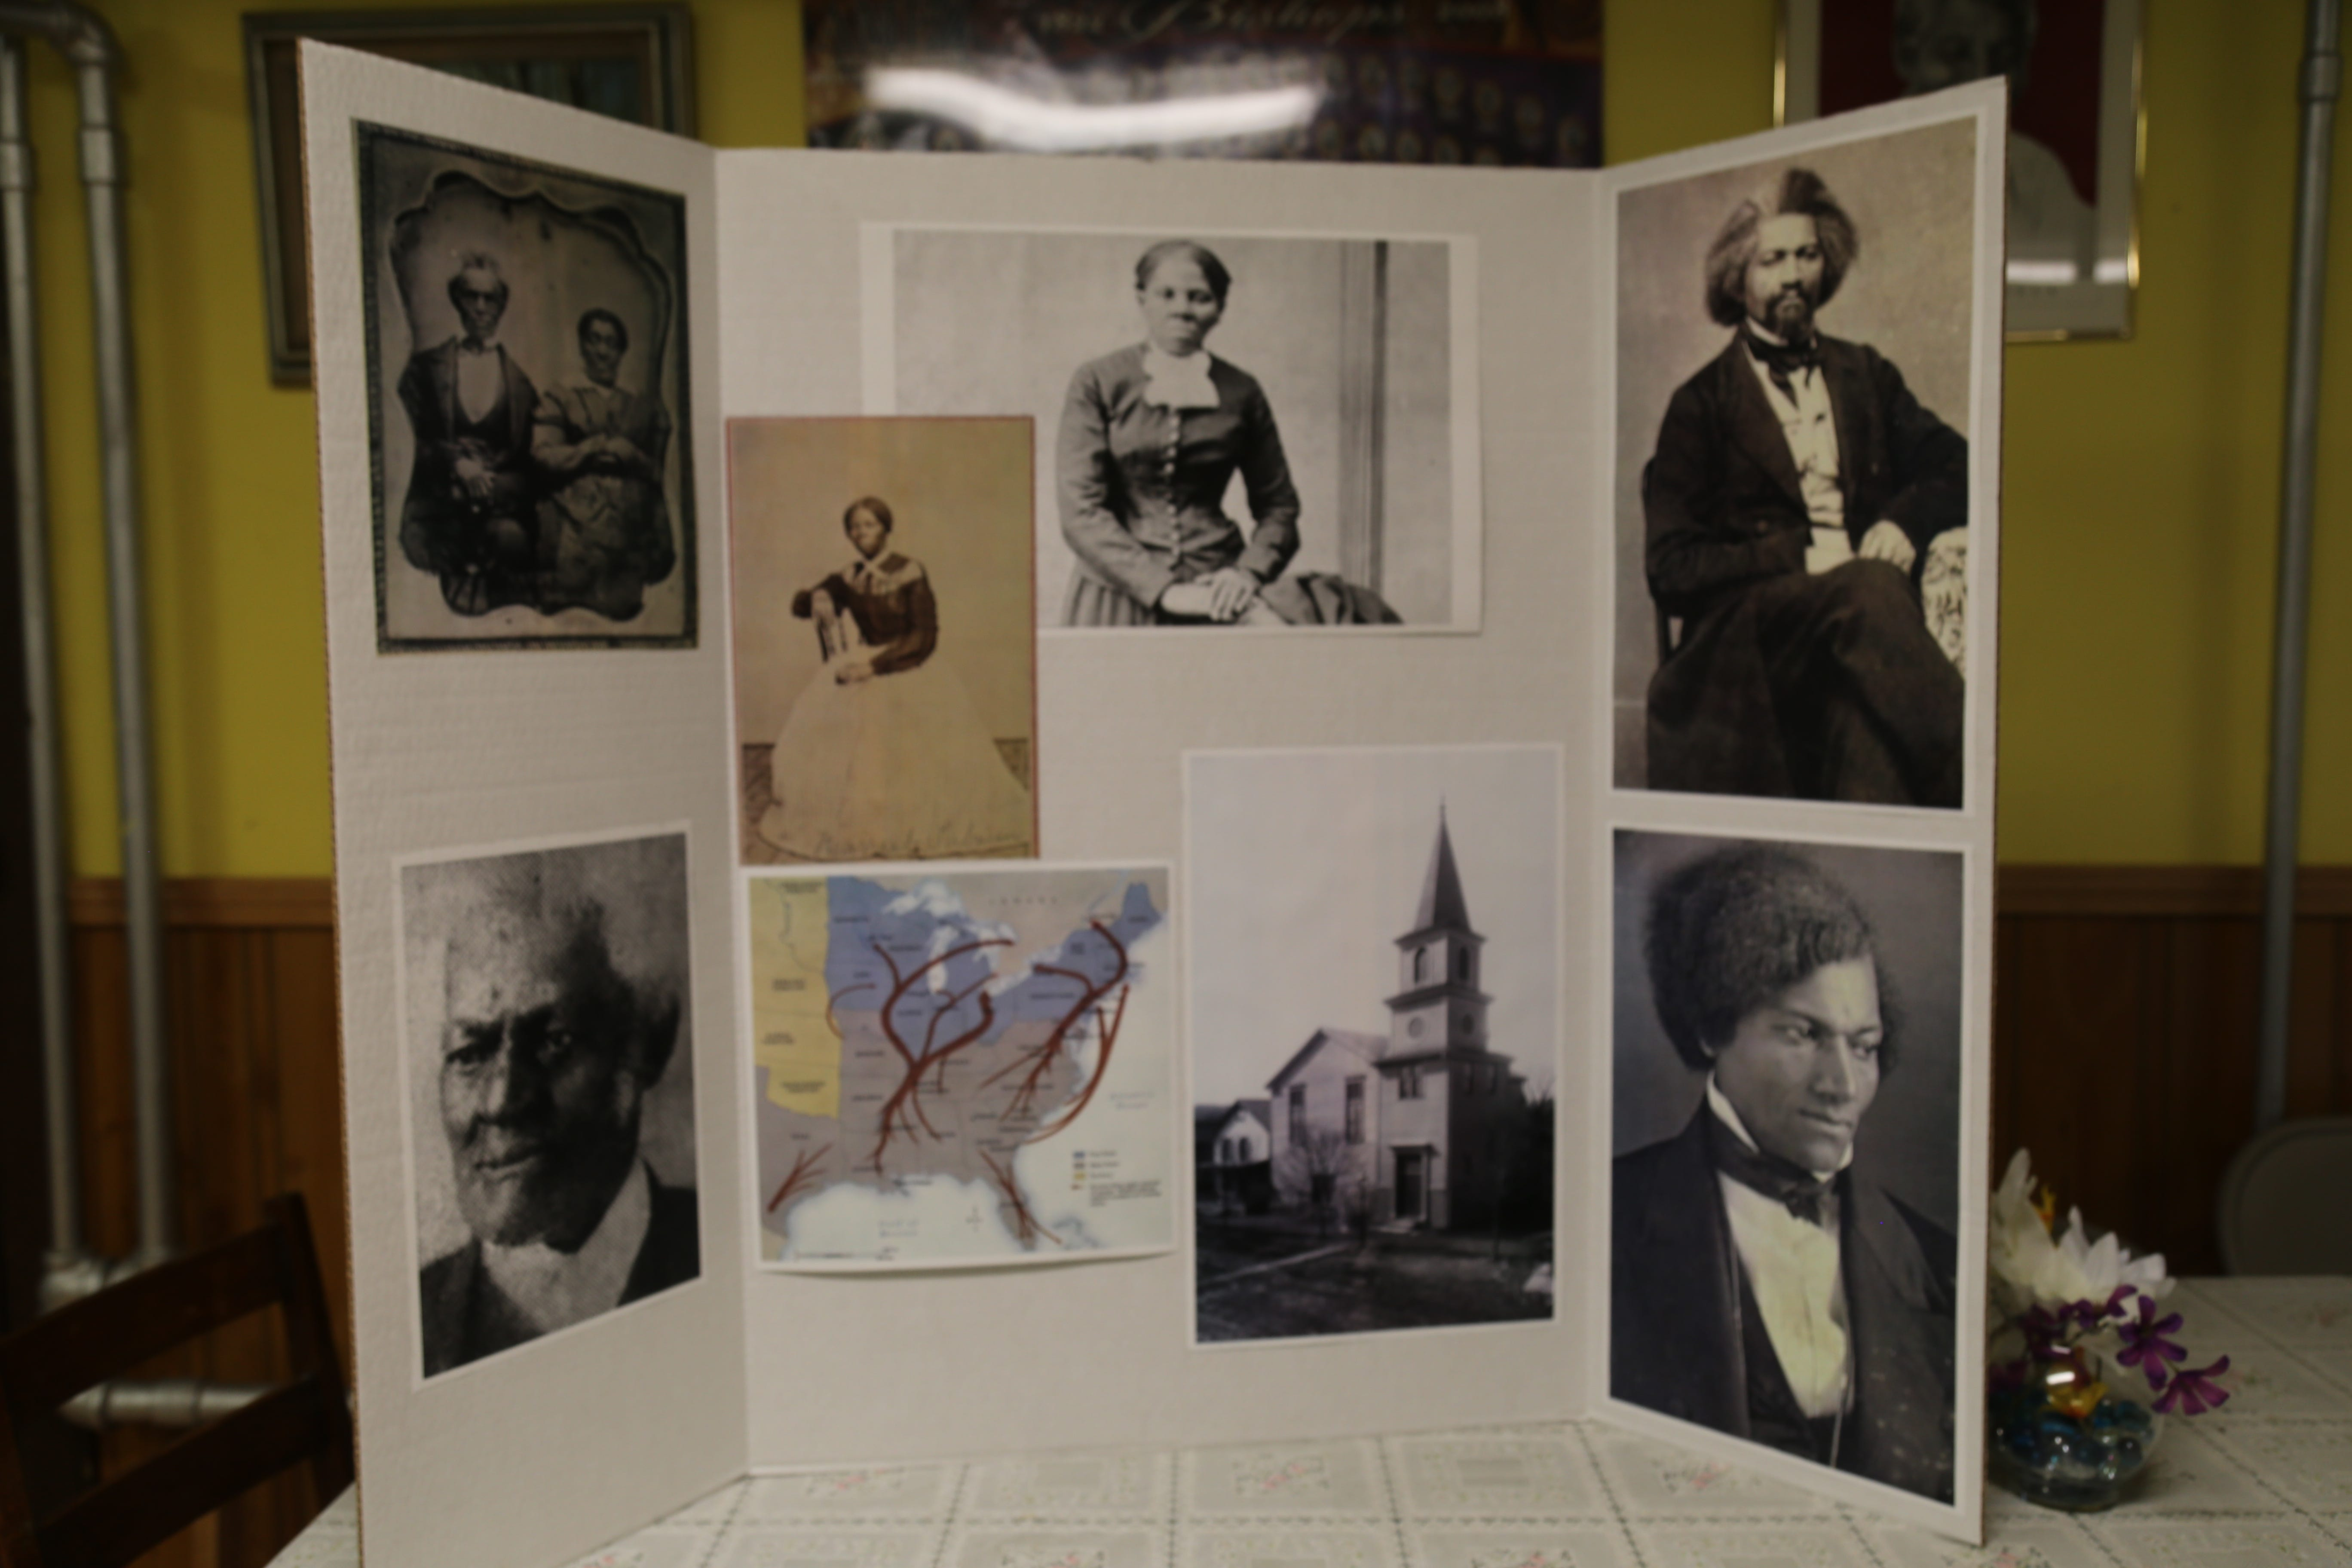 A poster board showing photos of Harriet Tubman and Frederick Douglass  stands on a table in a room in St. James AME Zion Church in Ithaca, N.Y. Both abolitionists visited and gave speeches at the church.